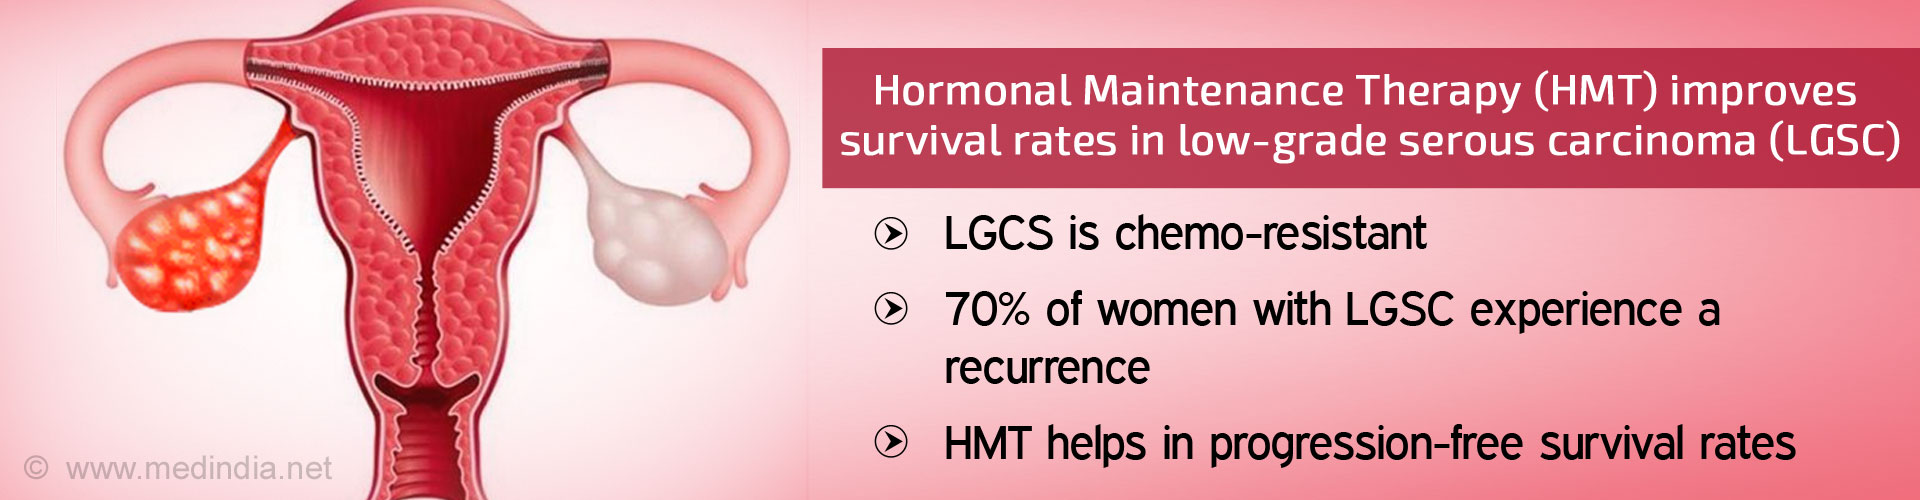 Hormonal Maintenance Therapy Improves Survival Rate in Ovarian Cancer